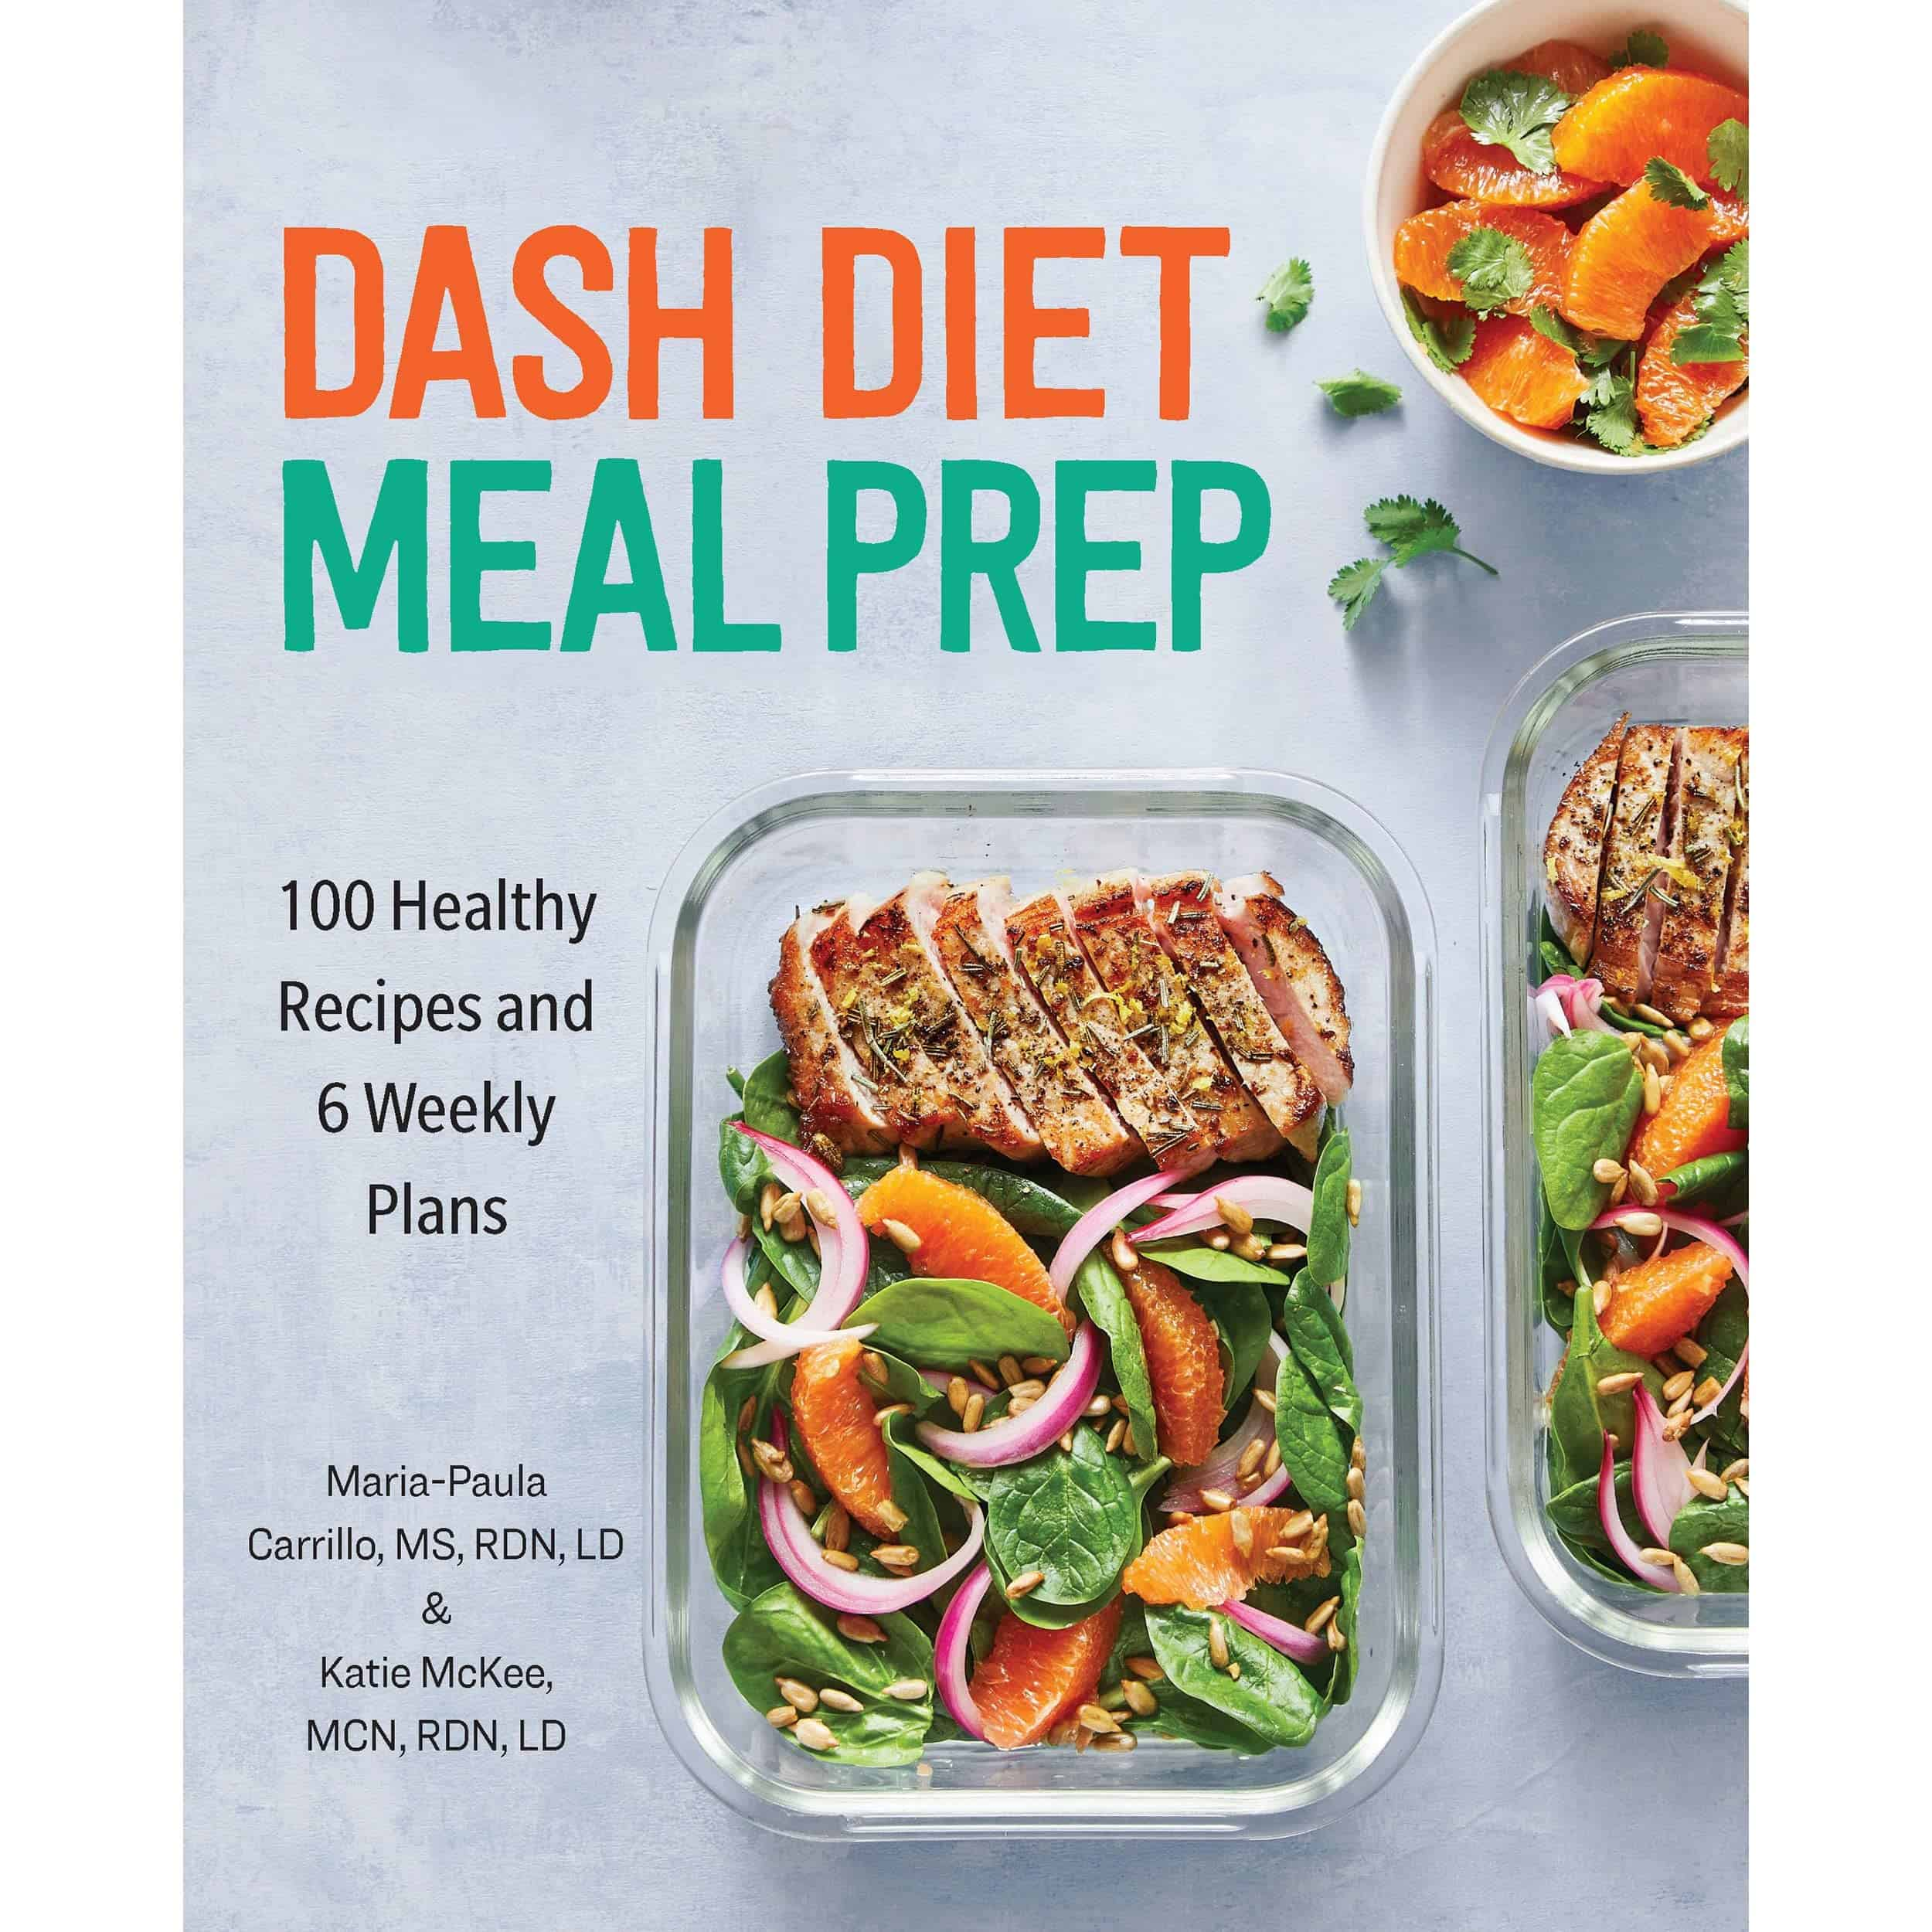 Healthy Dash diet meal prep plans for those suffering with high blood pressure!